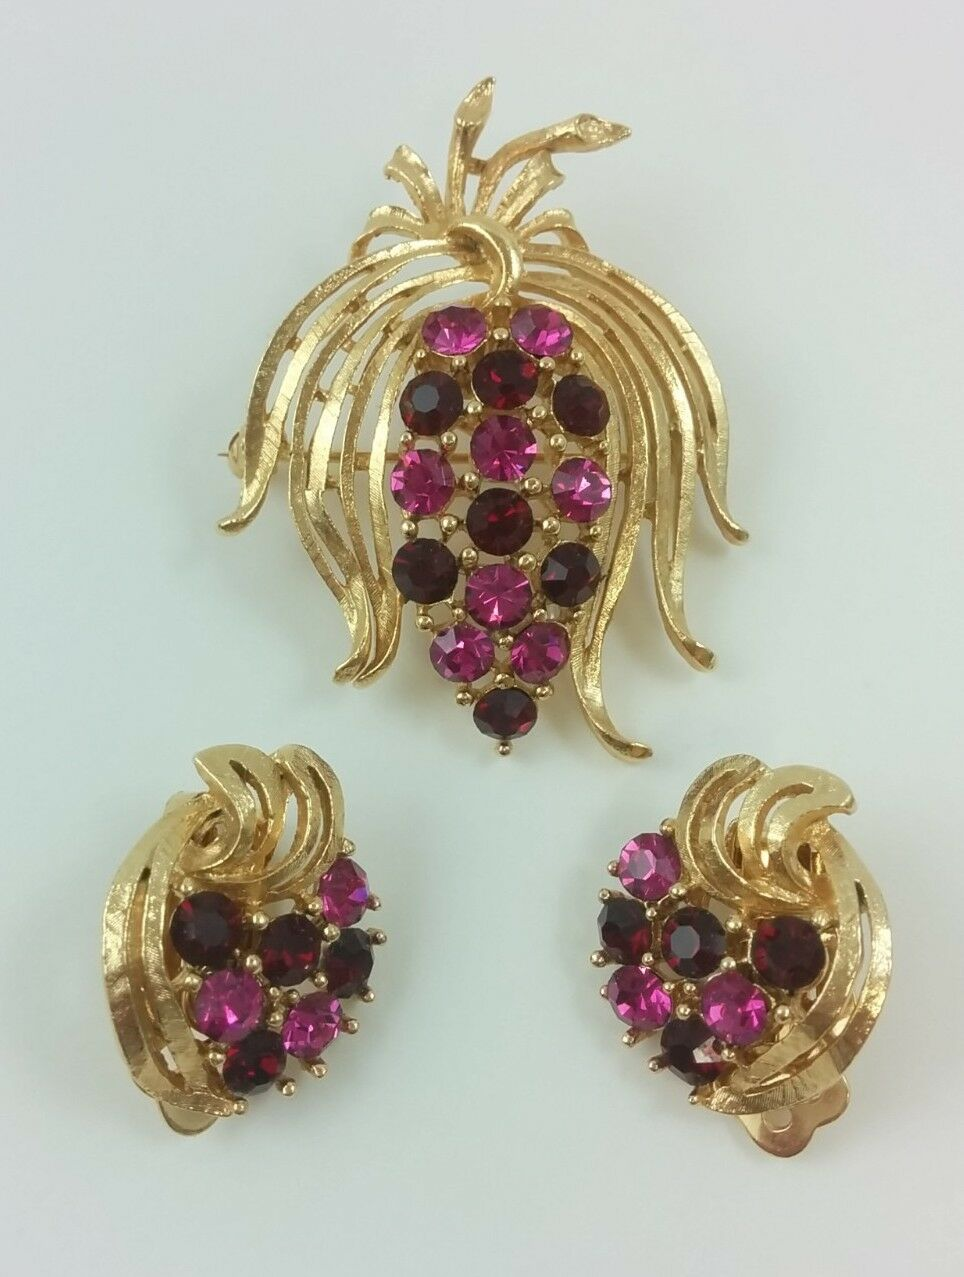 901239a2b Vintage gold Tone Flower Brooch Clip Earrings Set Red Pink Rhinestone  Grapes Pin nwcpys5088-Sets